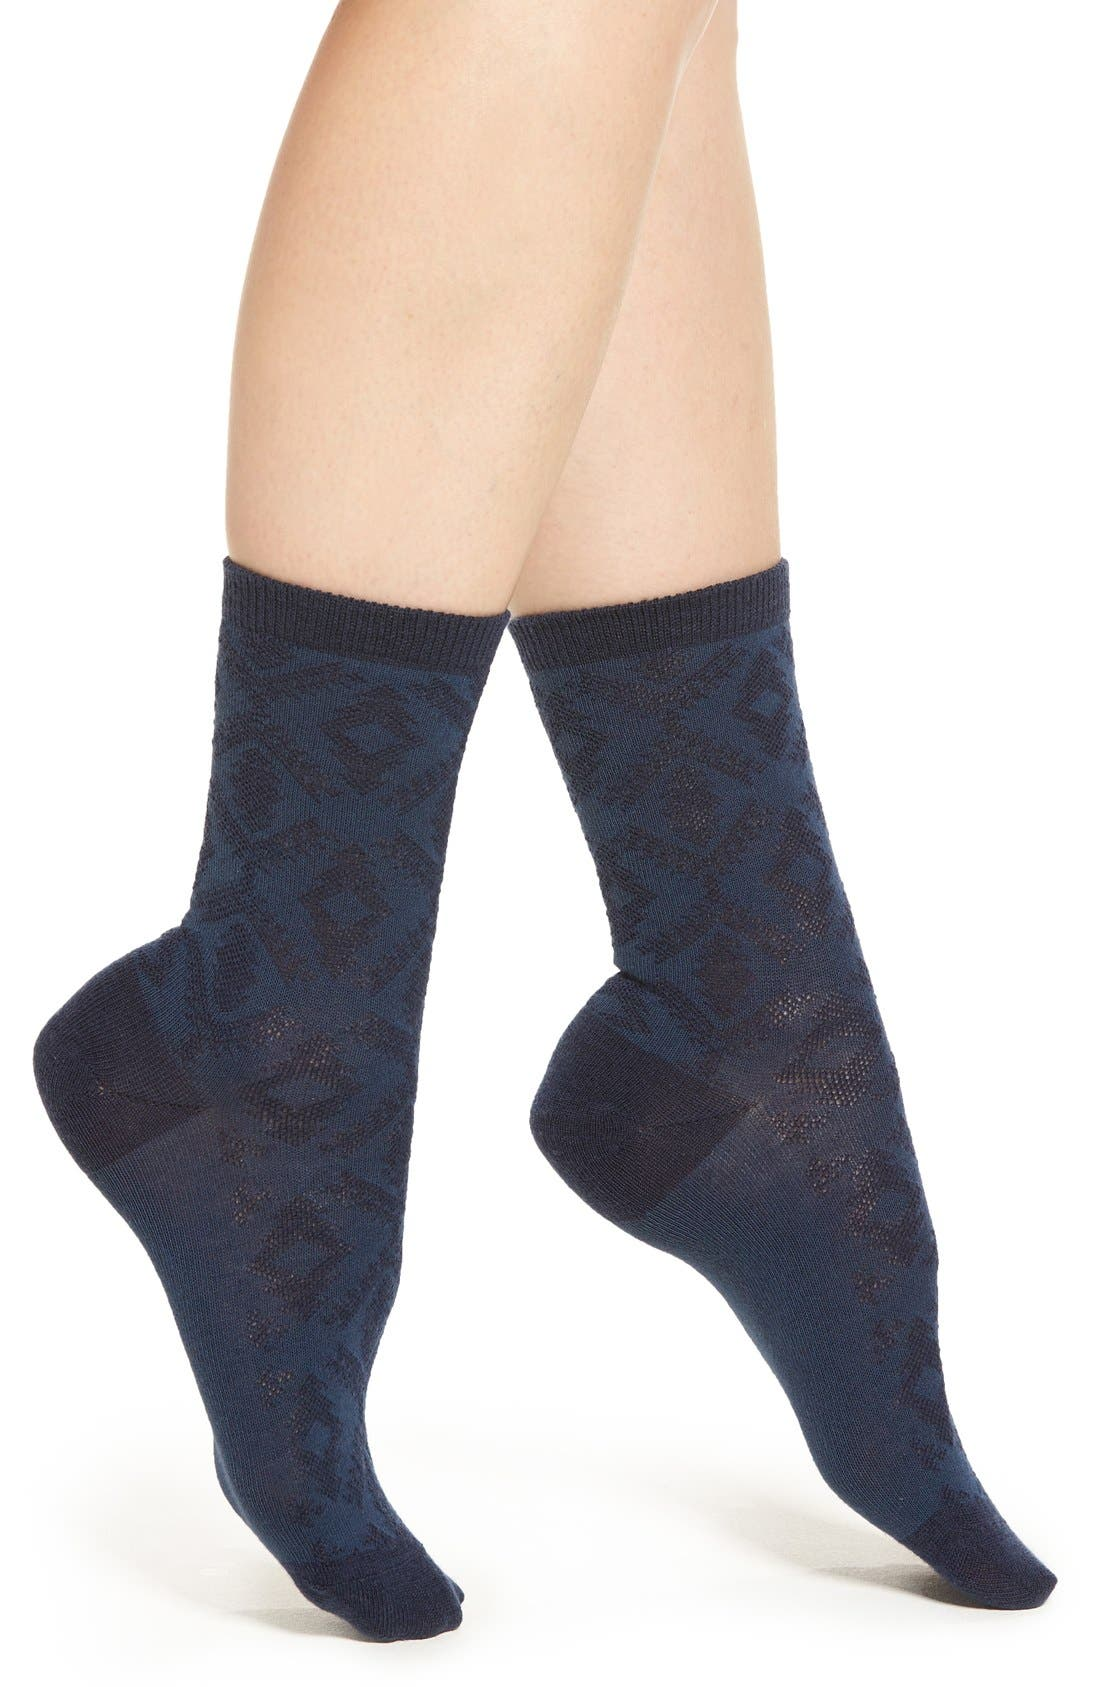 'Diamond River' Anklet Socks,                             Main thumbnail 1, color,                             Navy